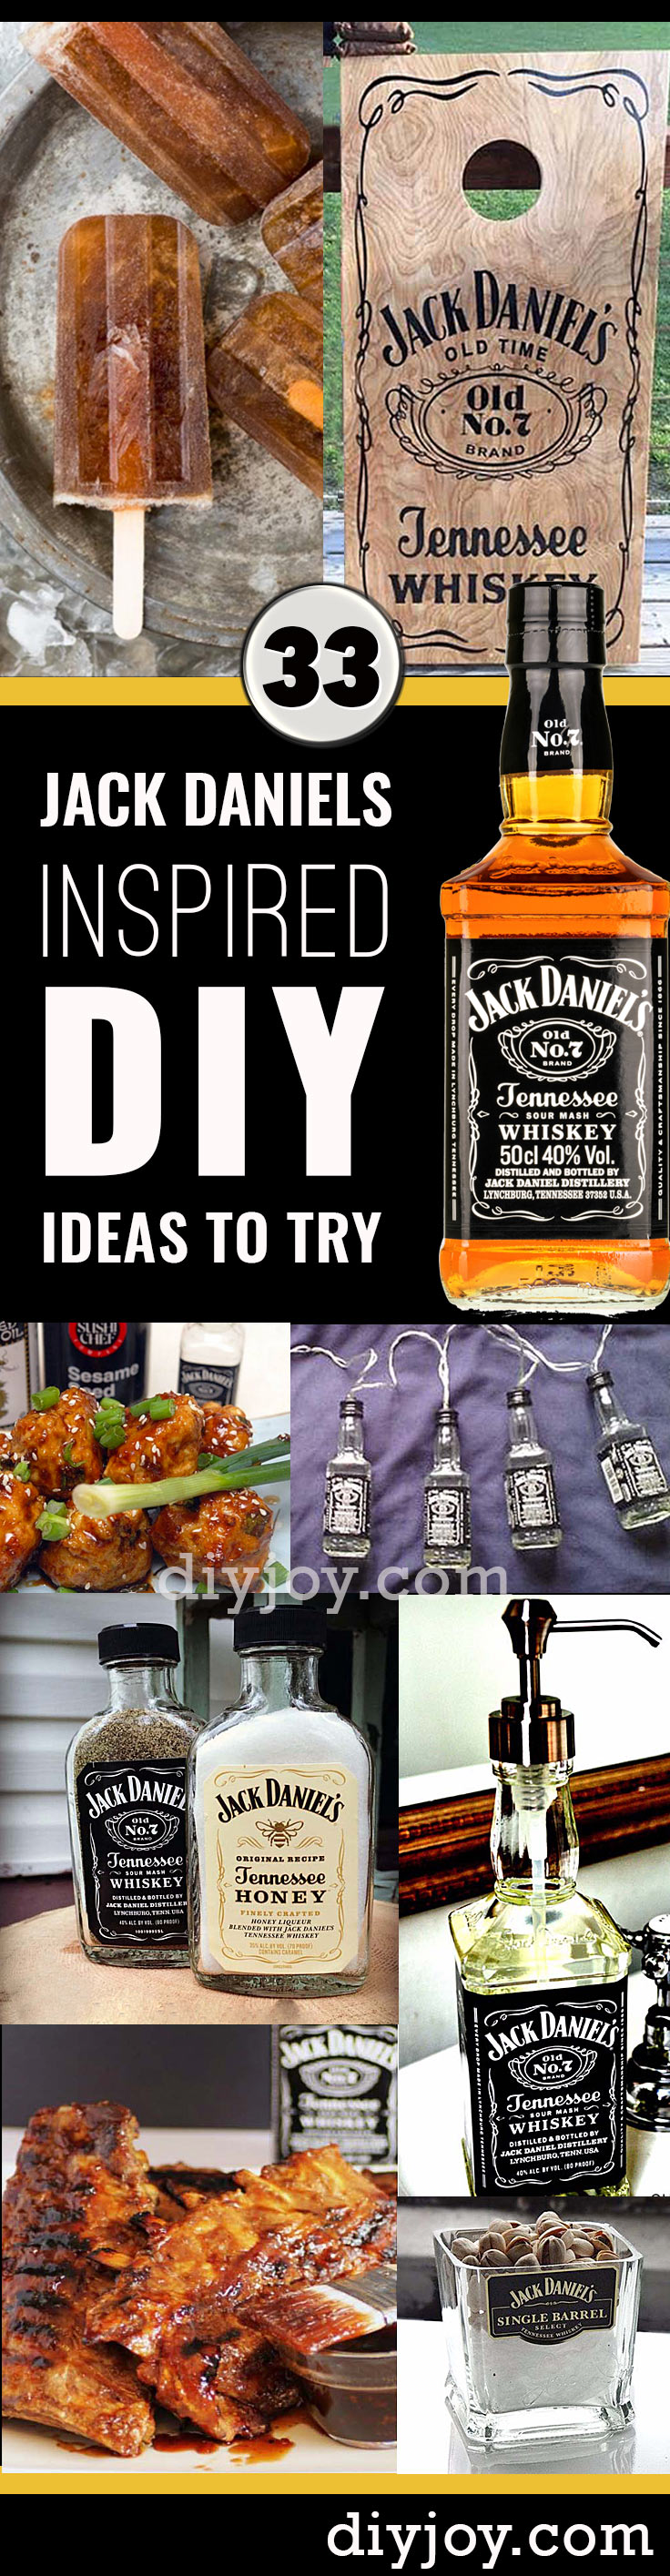 Fun DIY Ideas Made With Jack Daniels - Recipes, Projects and Crafts With The Bottle, Everything From Lamps and Decorations to Fudge and Cupcakes | #diy #crafts #jackdaniels